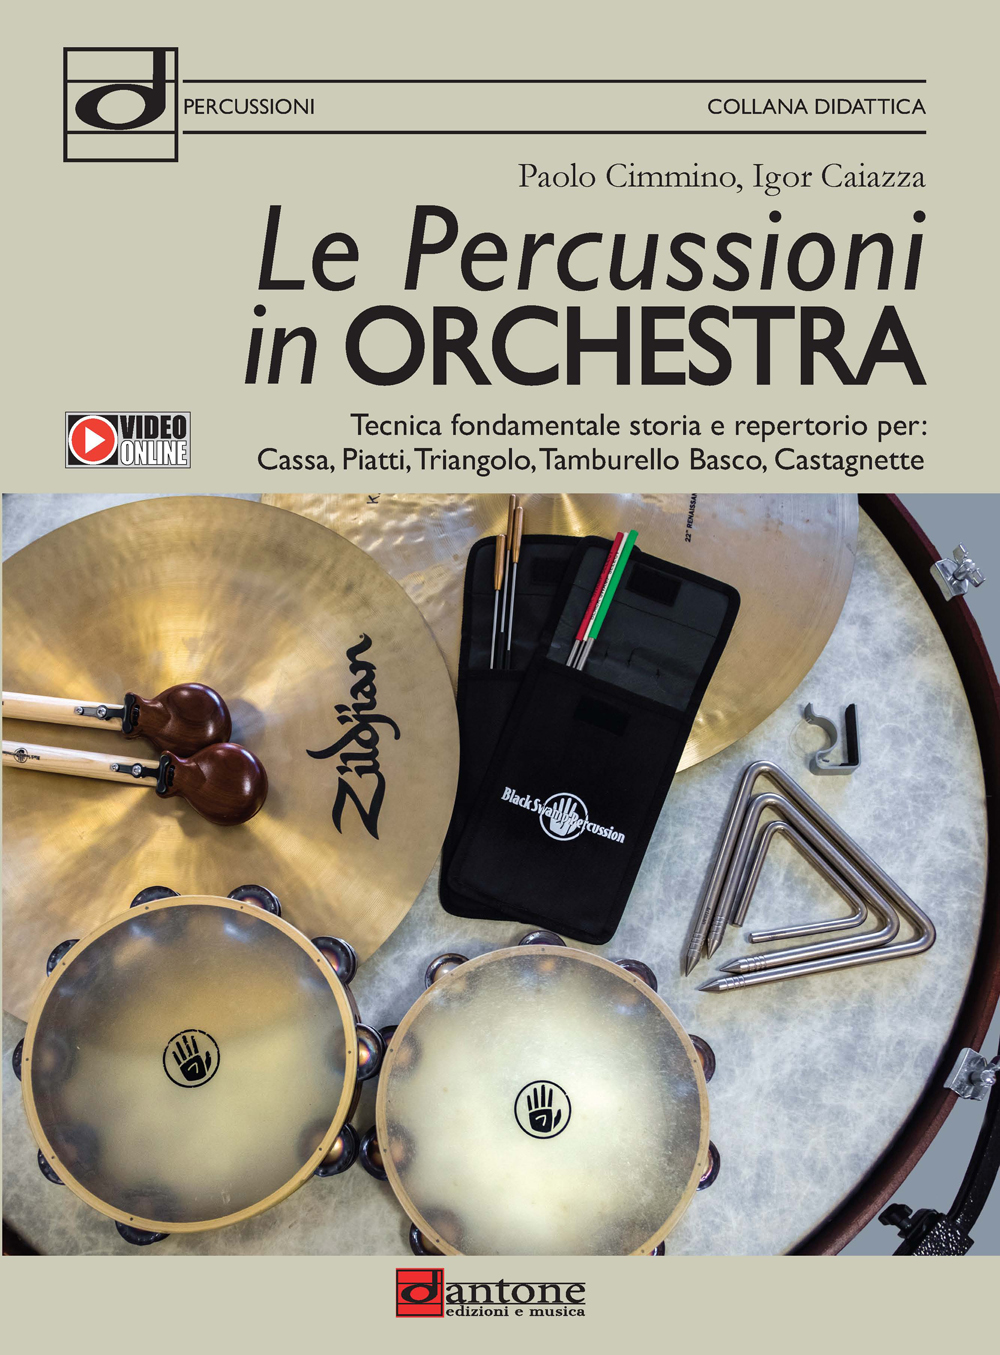 Paolo Cimmino Igor Caiazza: Le Percussioni In Orchestra: Percussion: